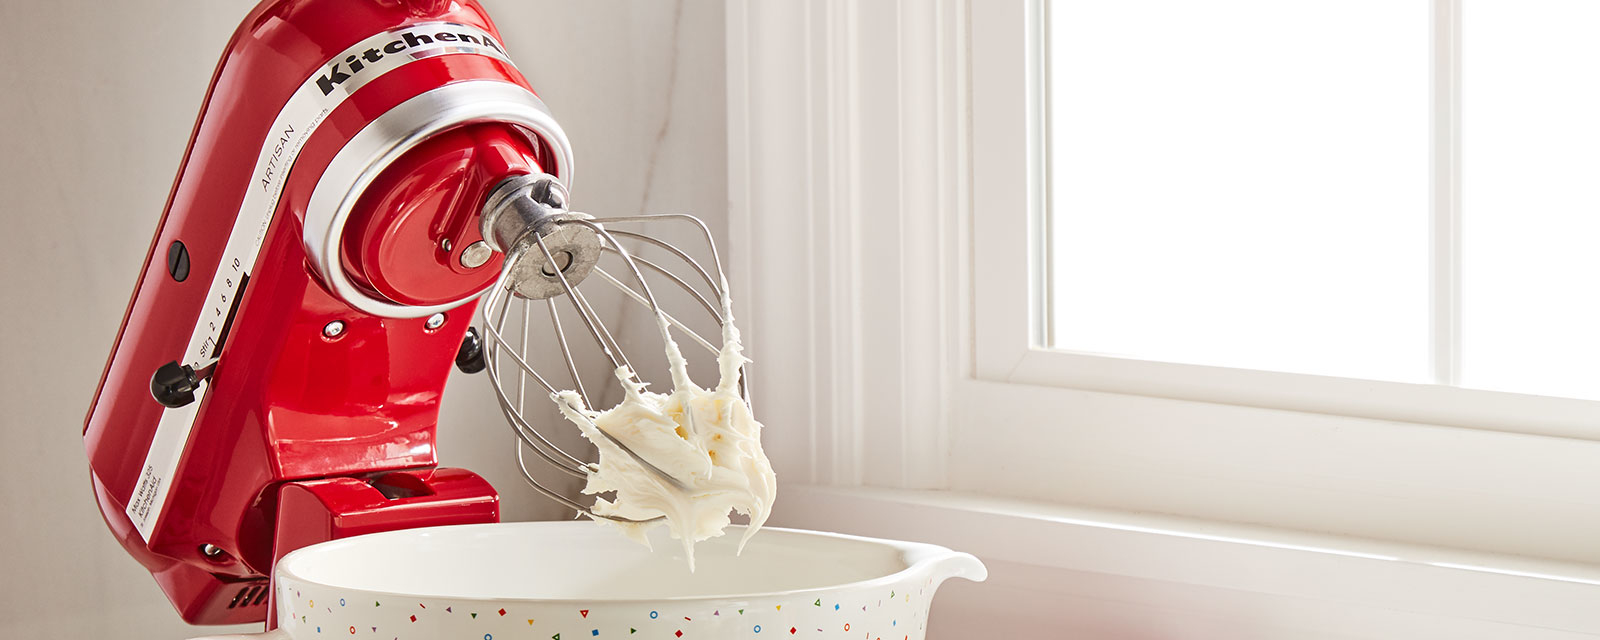 Red mixer with whisk